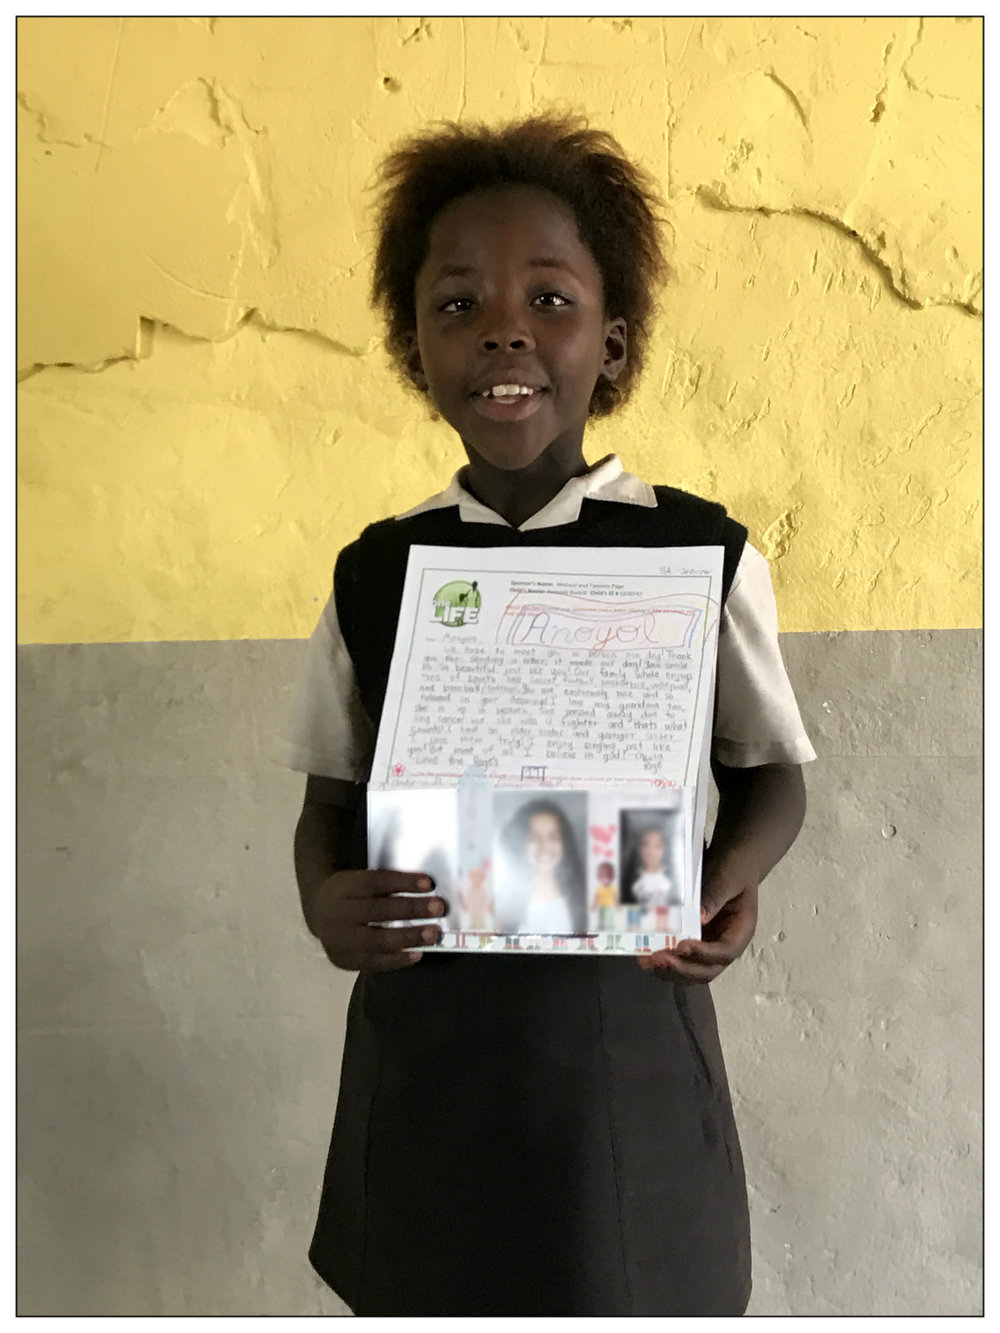 In South Africa, Anoyo was very excited to recently receive a letter from her sponsor. At Homework Club she excitedly read it out loud to all her friends.